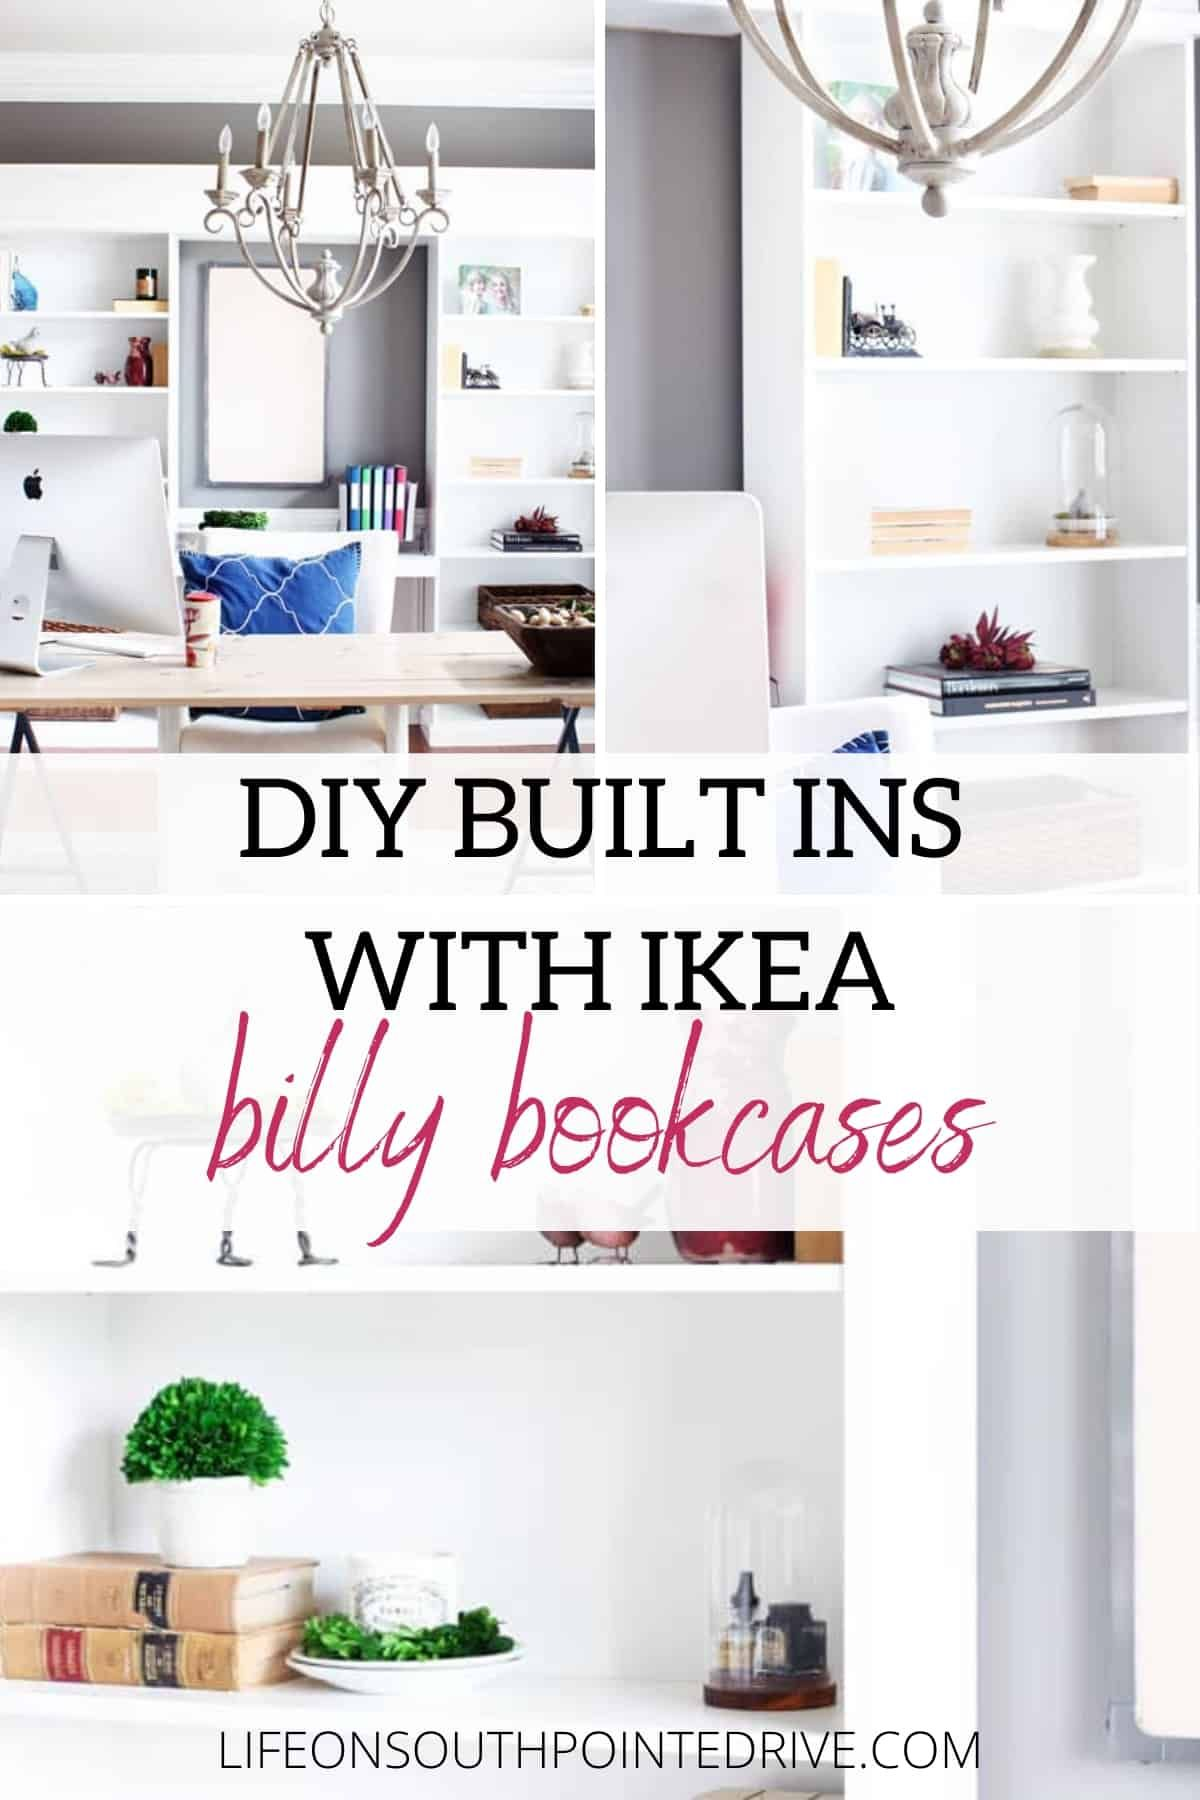 Diy Built Ins With Ikea Billy Bookcases Life On Southpointe Drive In 2020 Bookcase Diy Ikea Billy Bookcase Thrift Store Furniture Makeover Diy